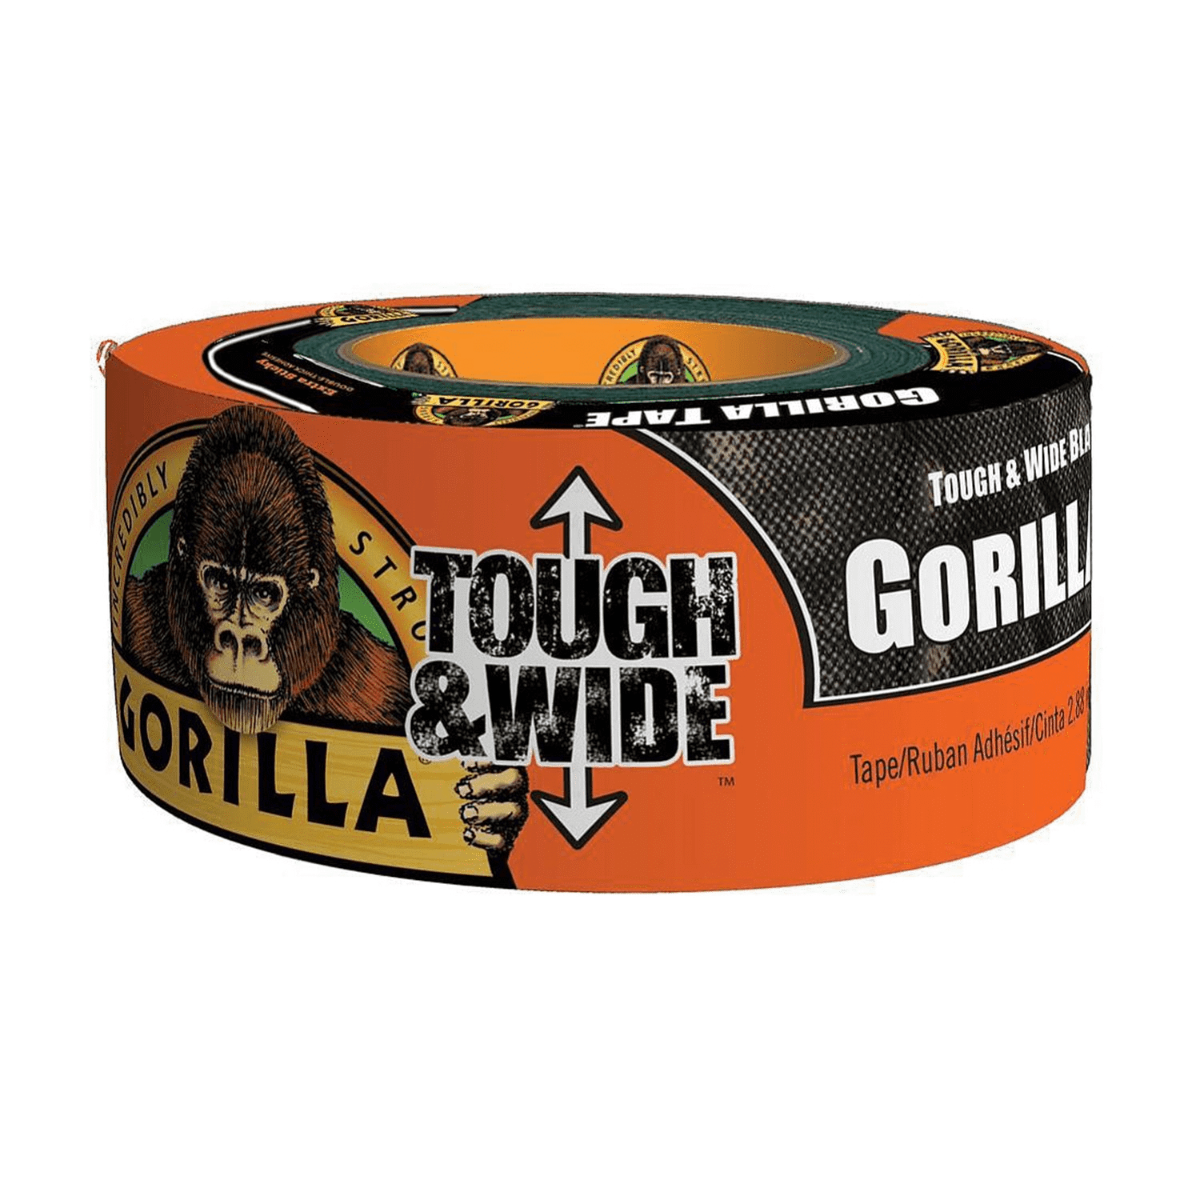 Gorilla Glue Tape, Tough and Wide, 73mmx27m